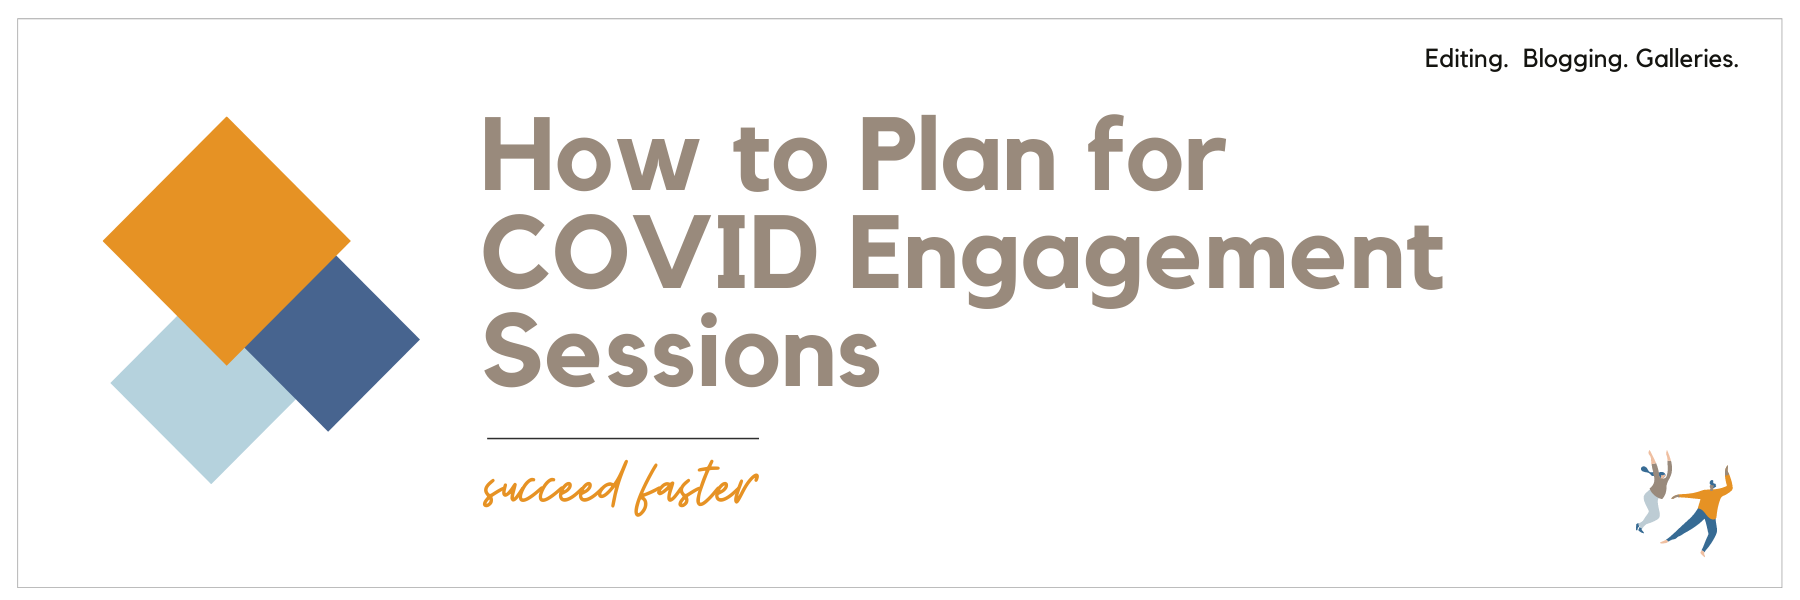 How to Plan for COVID Engagement Sessions